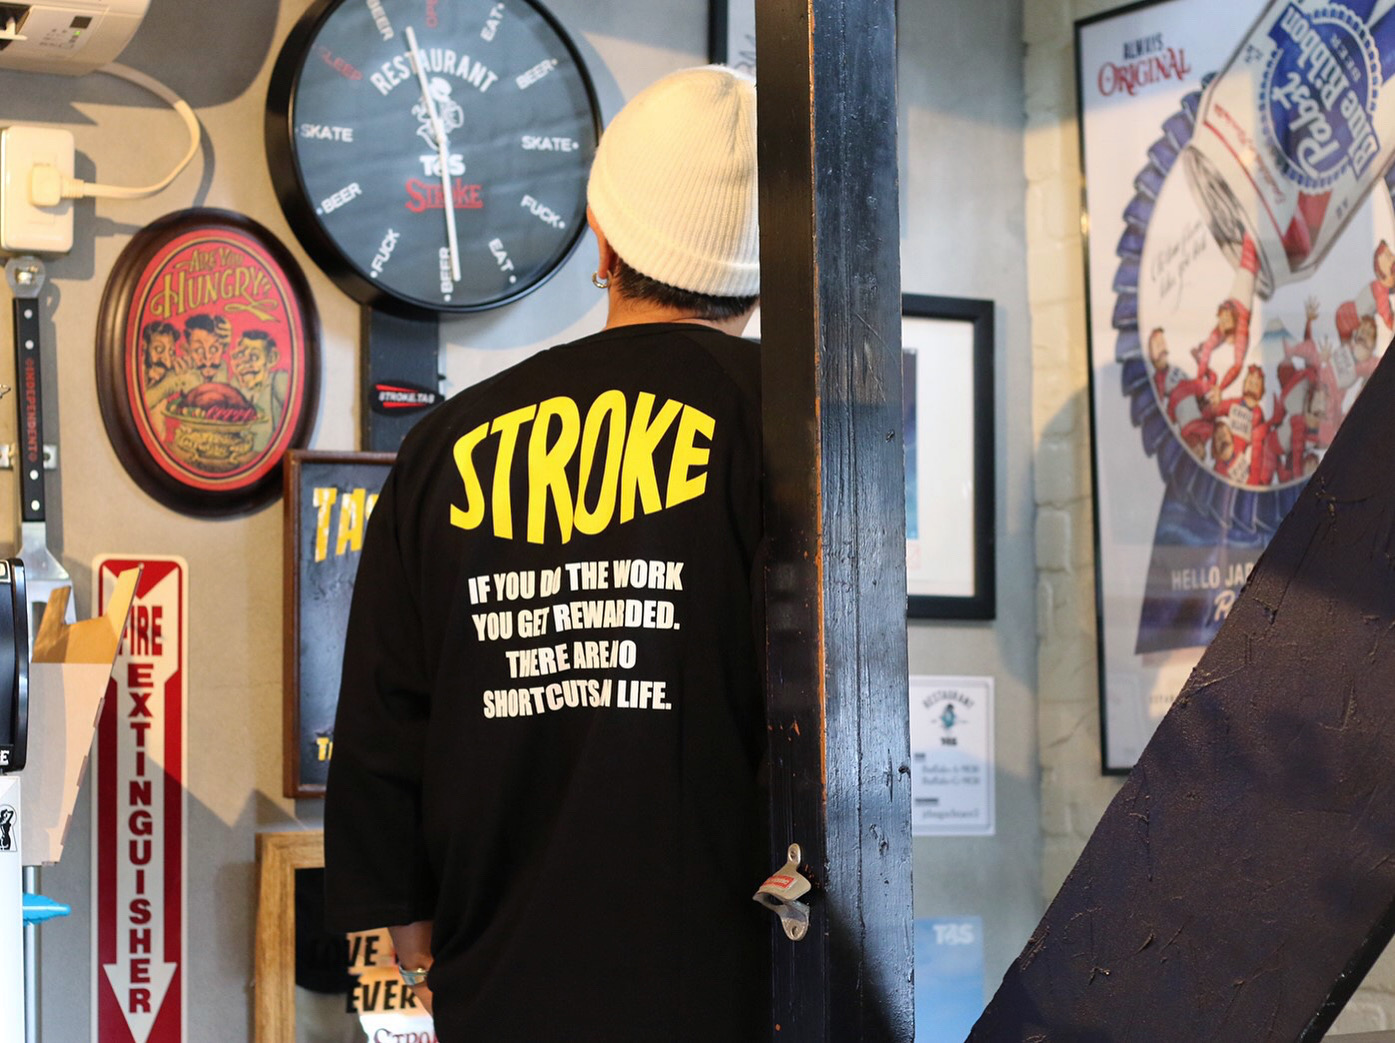 STROKE. ITEMS!!!!_d0101000_1159285.jpg